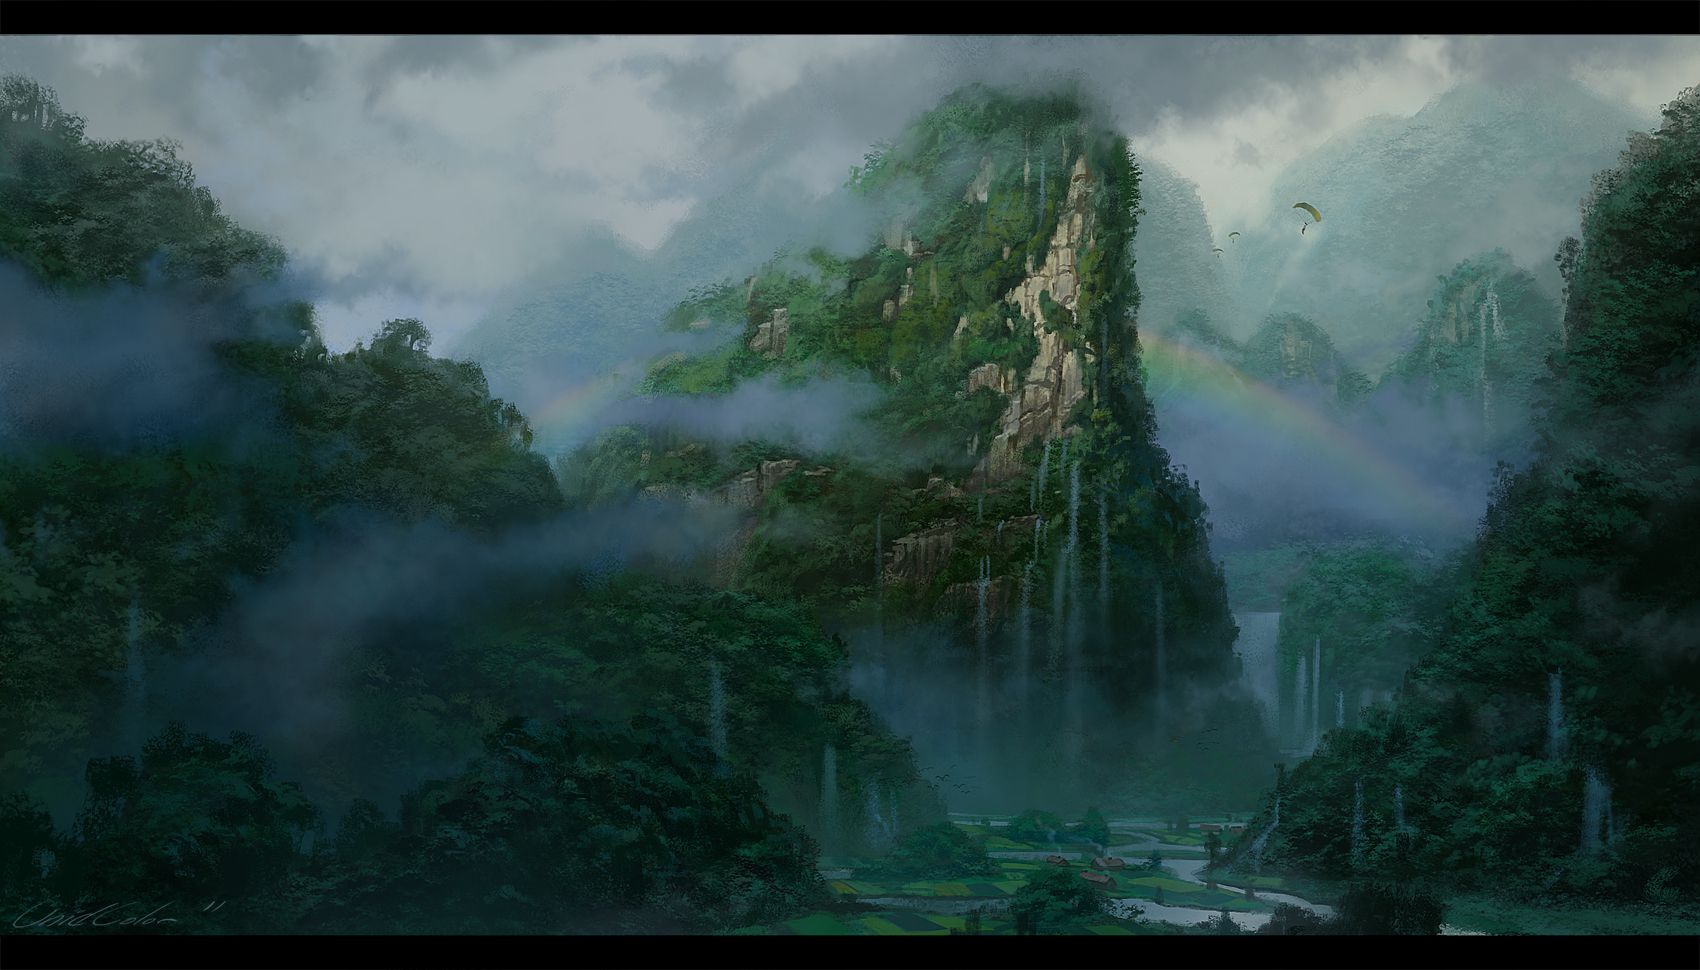 mist_valley_by_unidcolor-d468eca.jpg